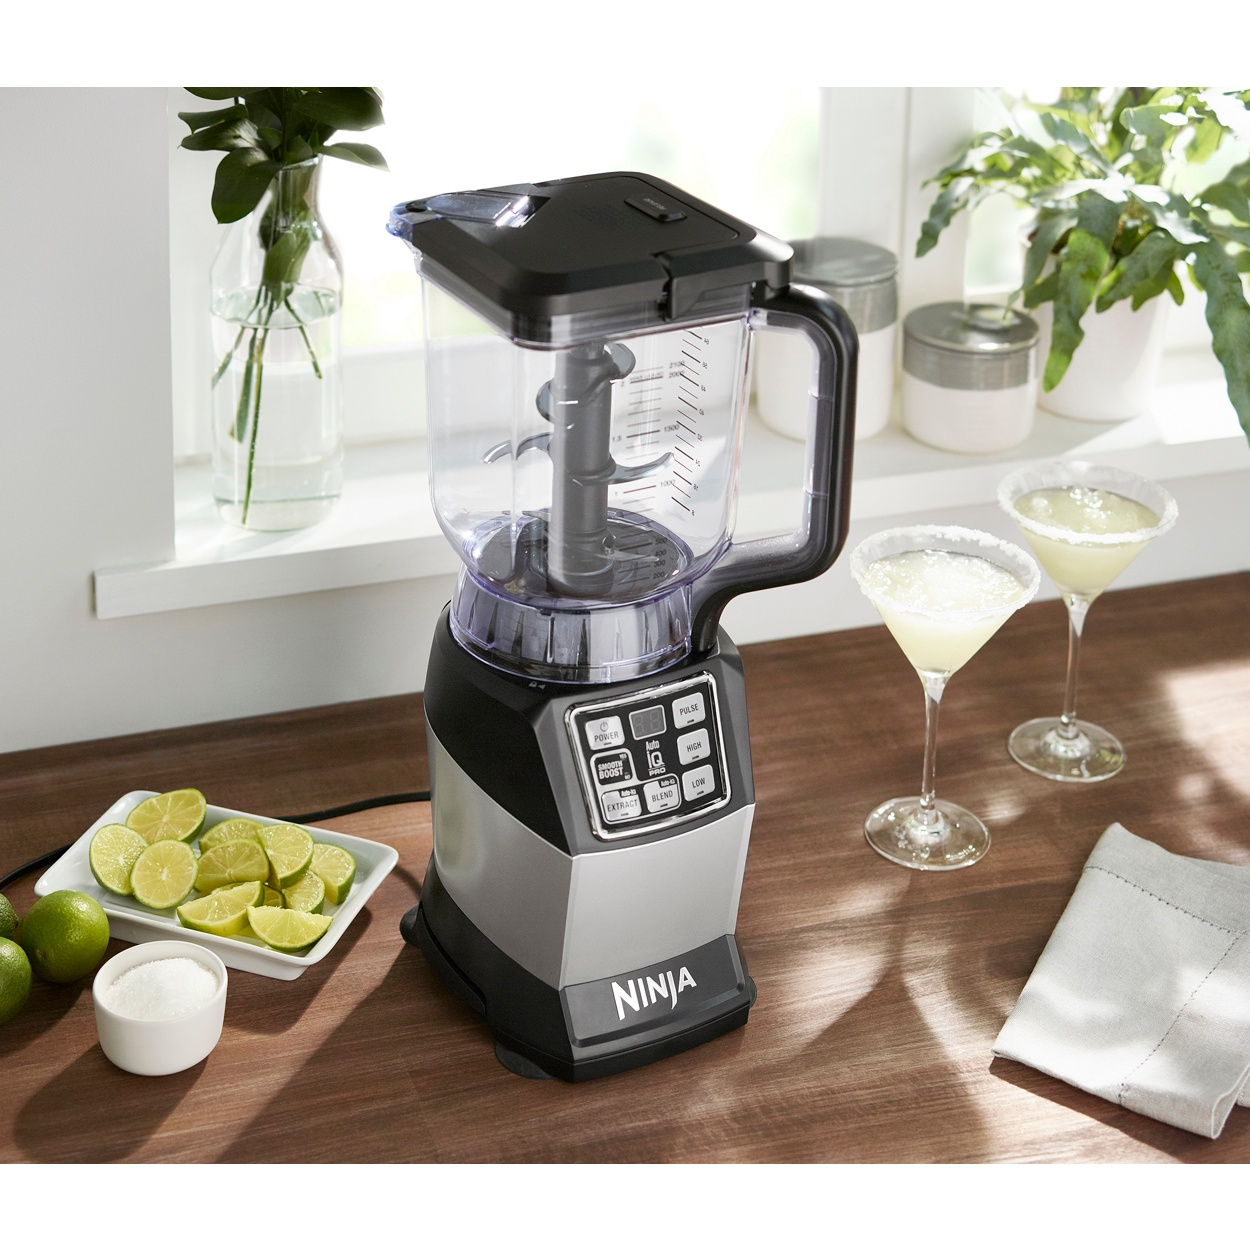 Uncategorized Debenhams Kitchen Appliances nutri ninja silver compact blender duo bl492uk debenhams debenhams